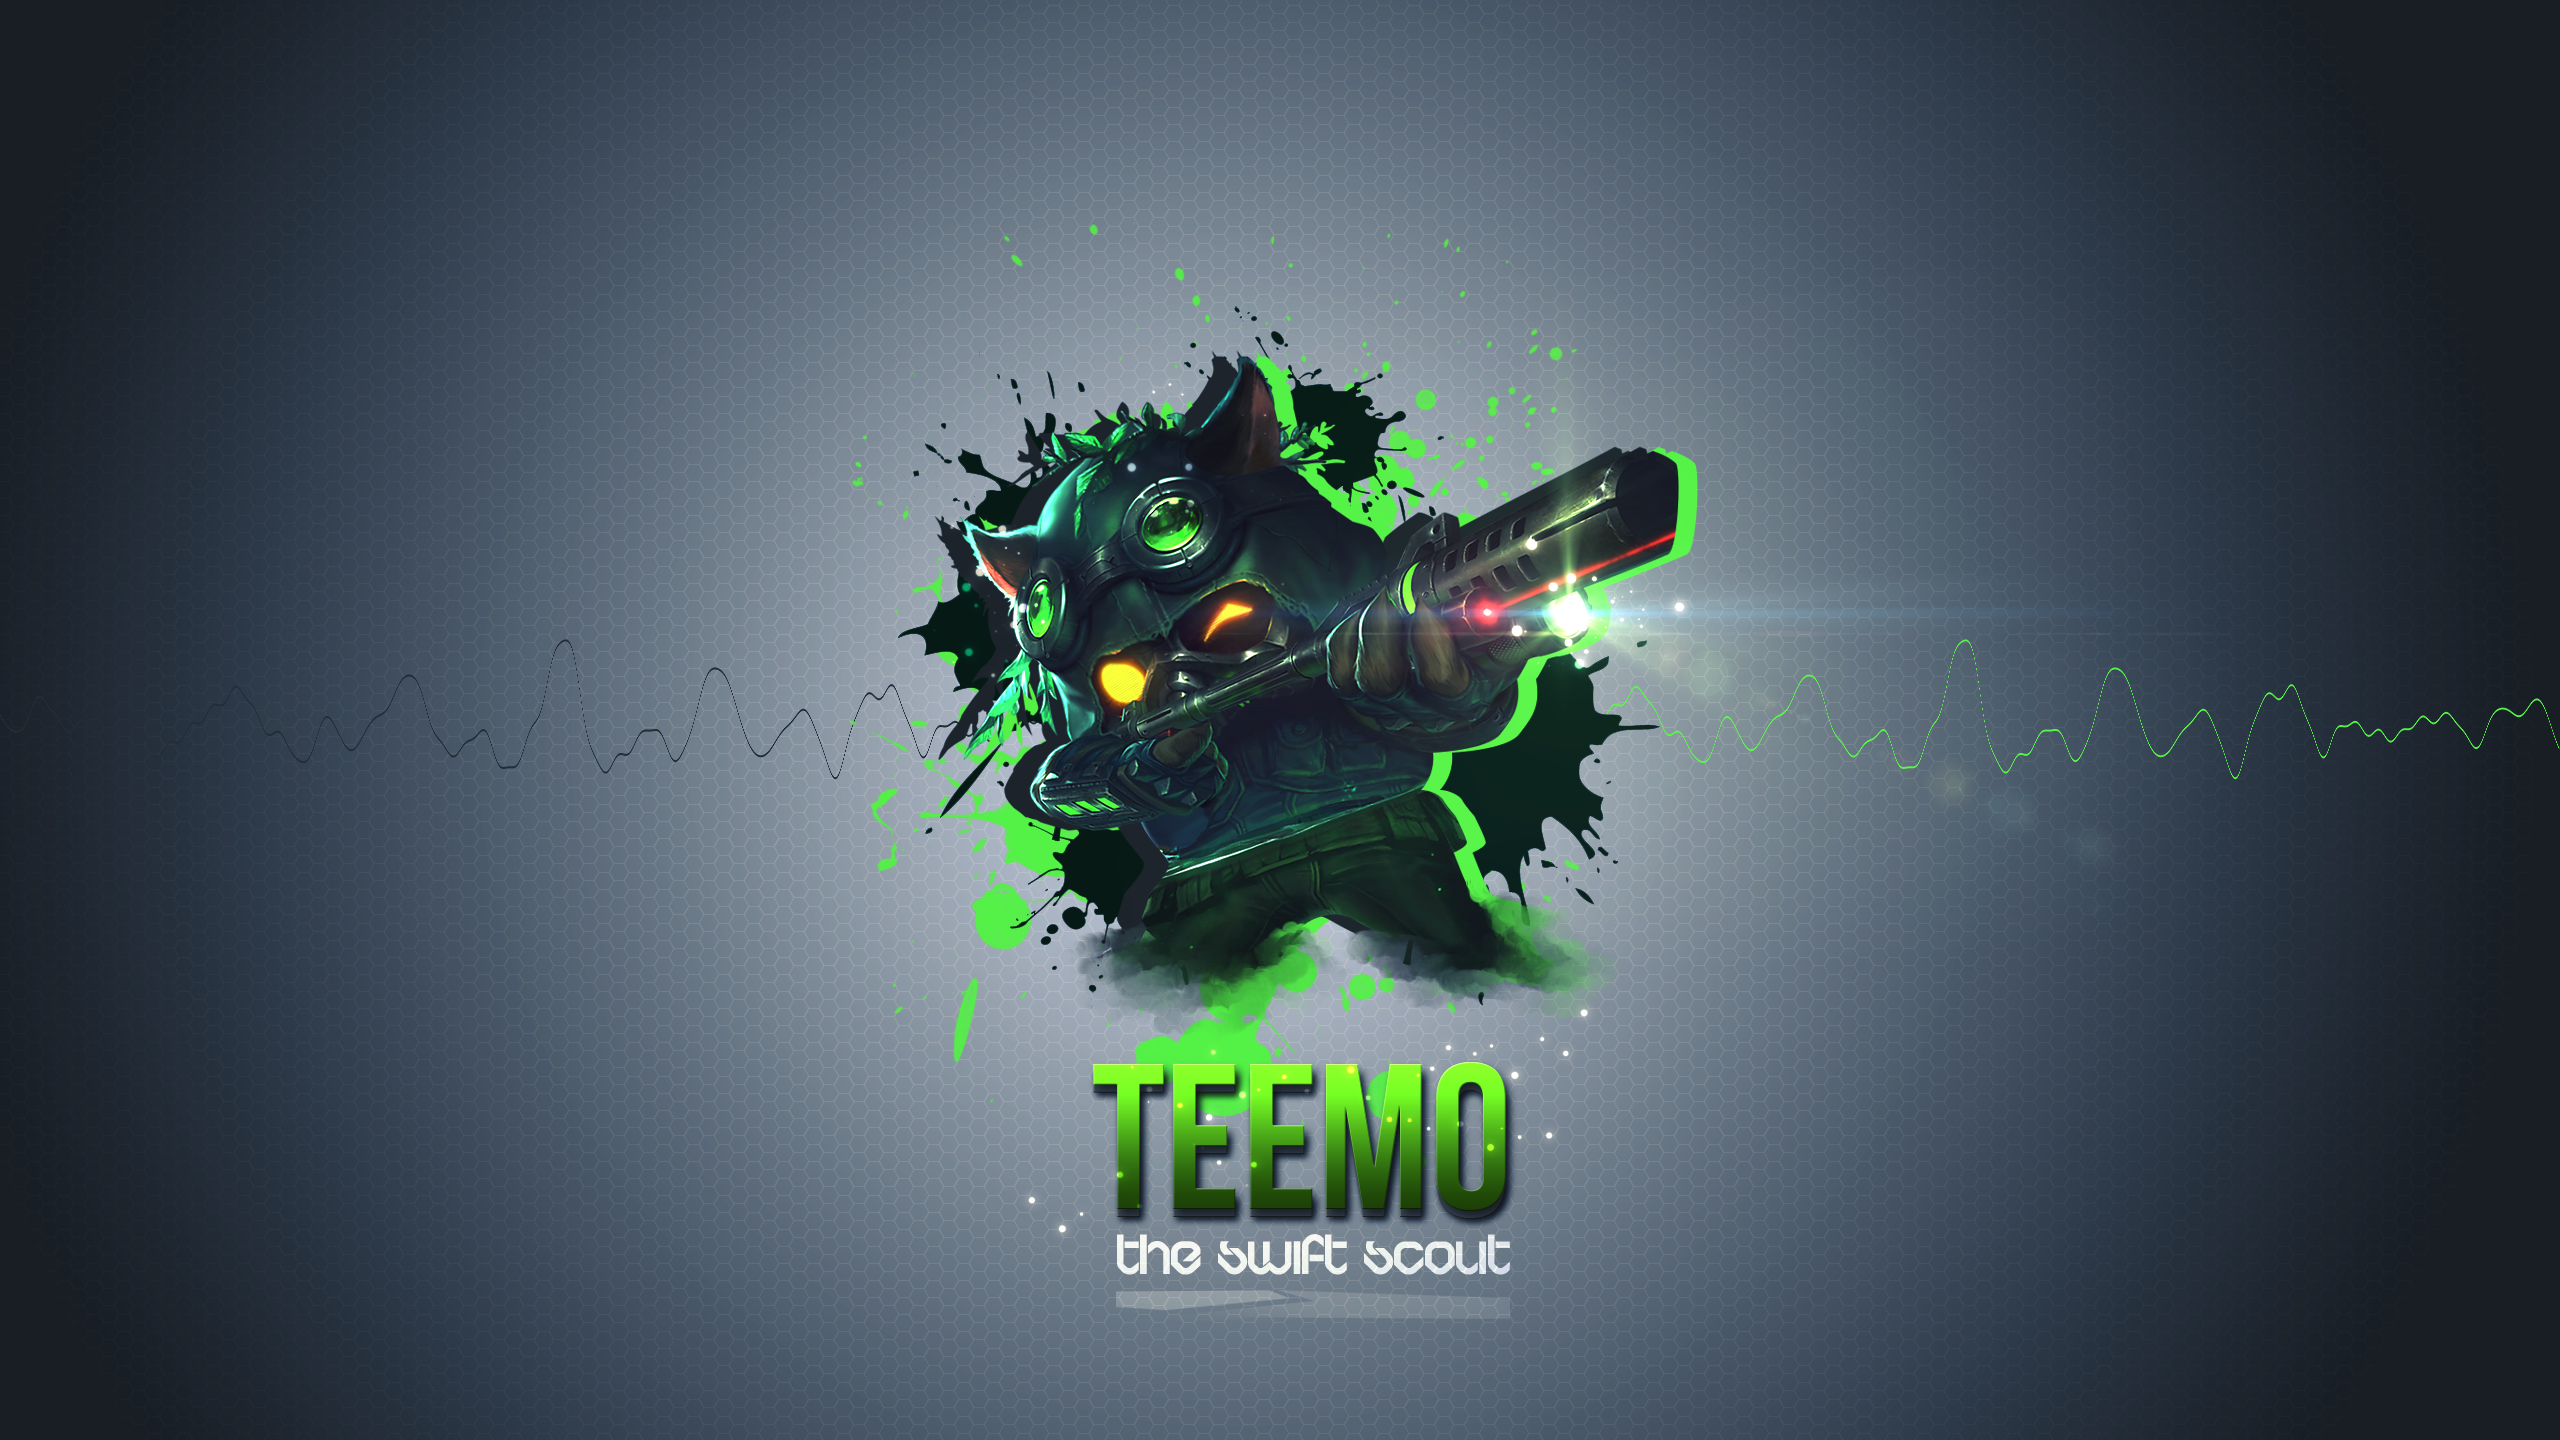 Omega Teemo wallpaper